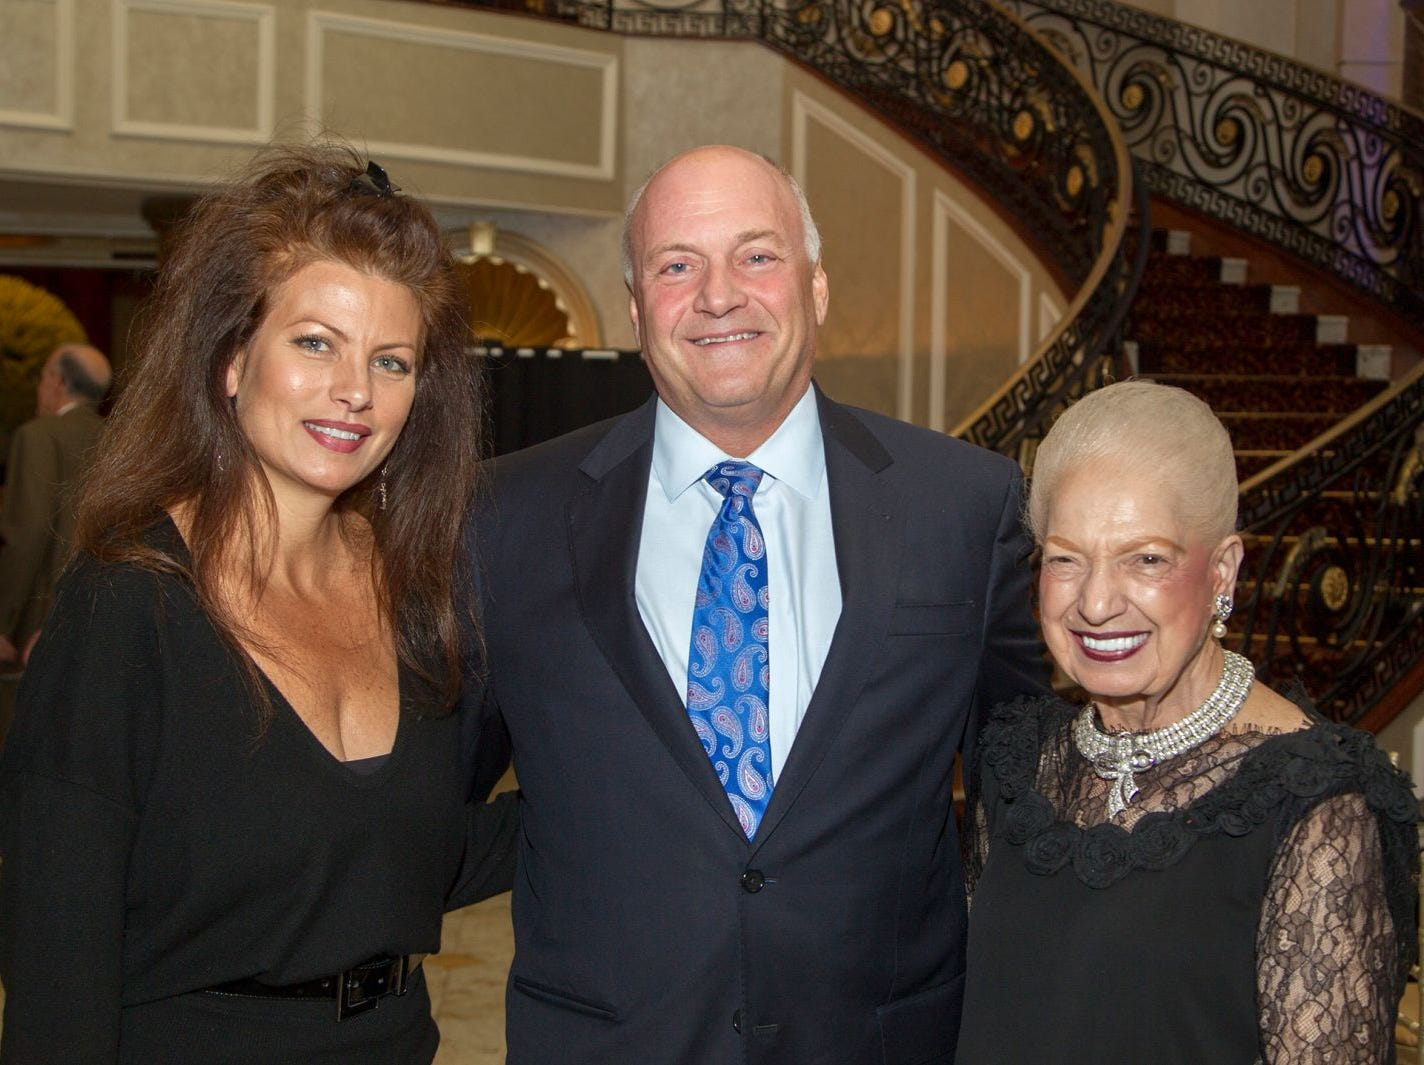 Kristine Sayrafe, Michael Maron, Lucia Palestroni. Holy Name Medical Center held its 2018 MS Center Awards Reception at the Venetian in Garfield. 10/23/2018